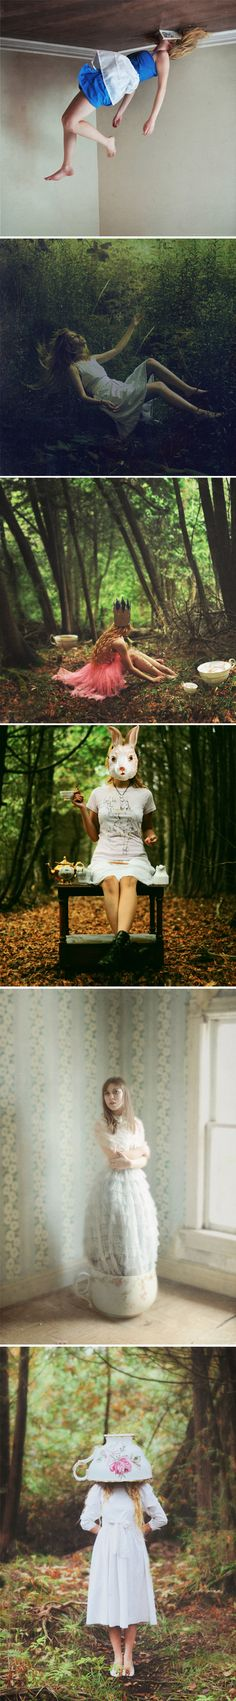 Go down the rabbit hole  Lissy Laricchia